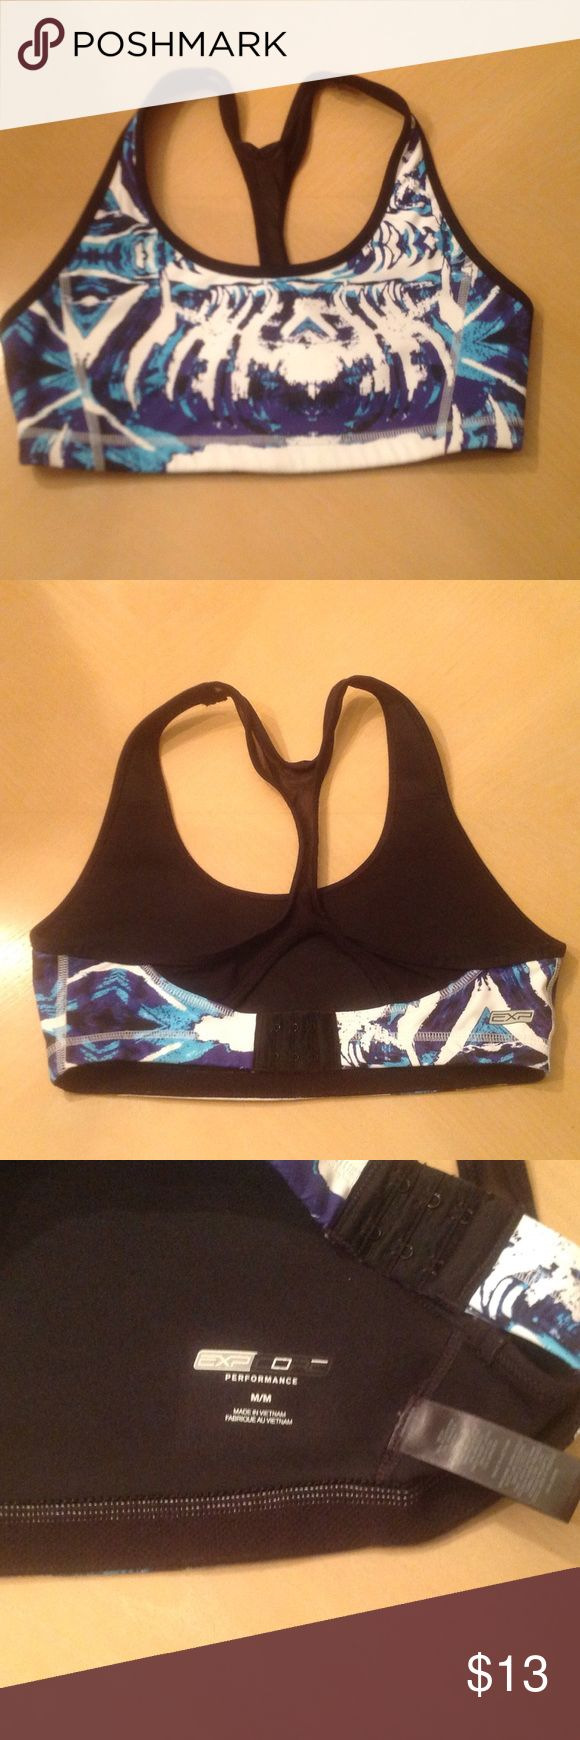 Express sports bra Blue and white sports bra from Express. New without tags. Express Intimates & Sleepwear Bras